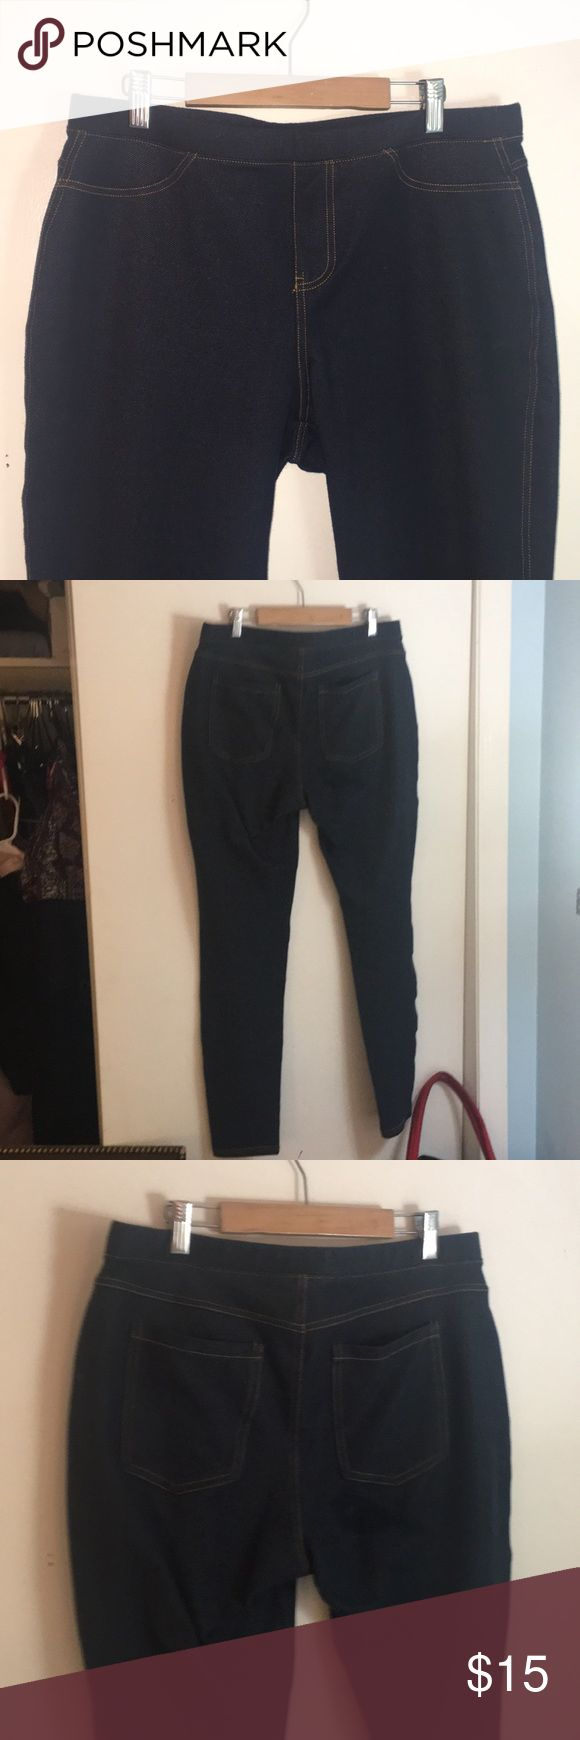 "skinny jean leggings w back pockets 78% cotton 19% polyester 3% spandex dark blue denim skinny skins. two back pockets and two front ""faux pockets"". ankle length. elastic waist. inseam approximately 30.5"". very forgiving pants!!! as well as SUPER COMFORTABLE!!! Jeans Skinny"